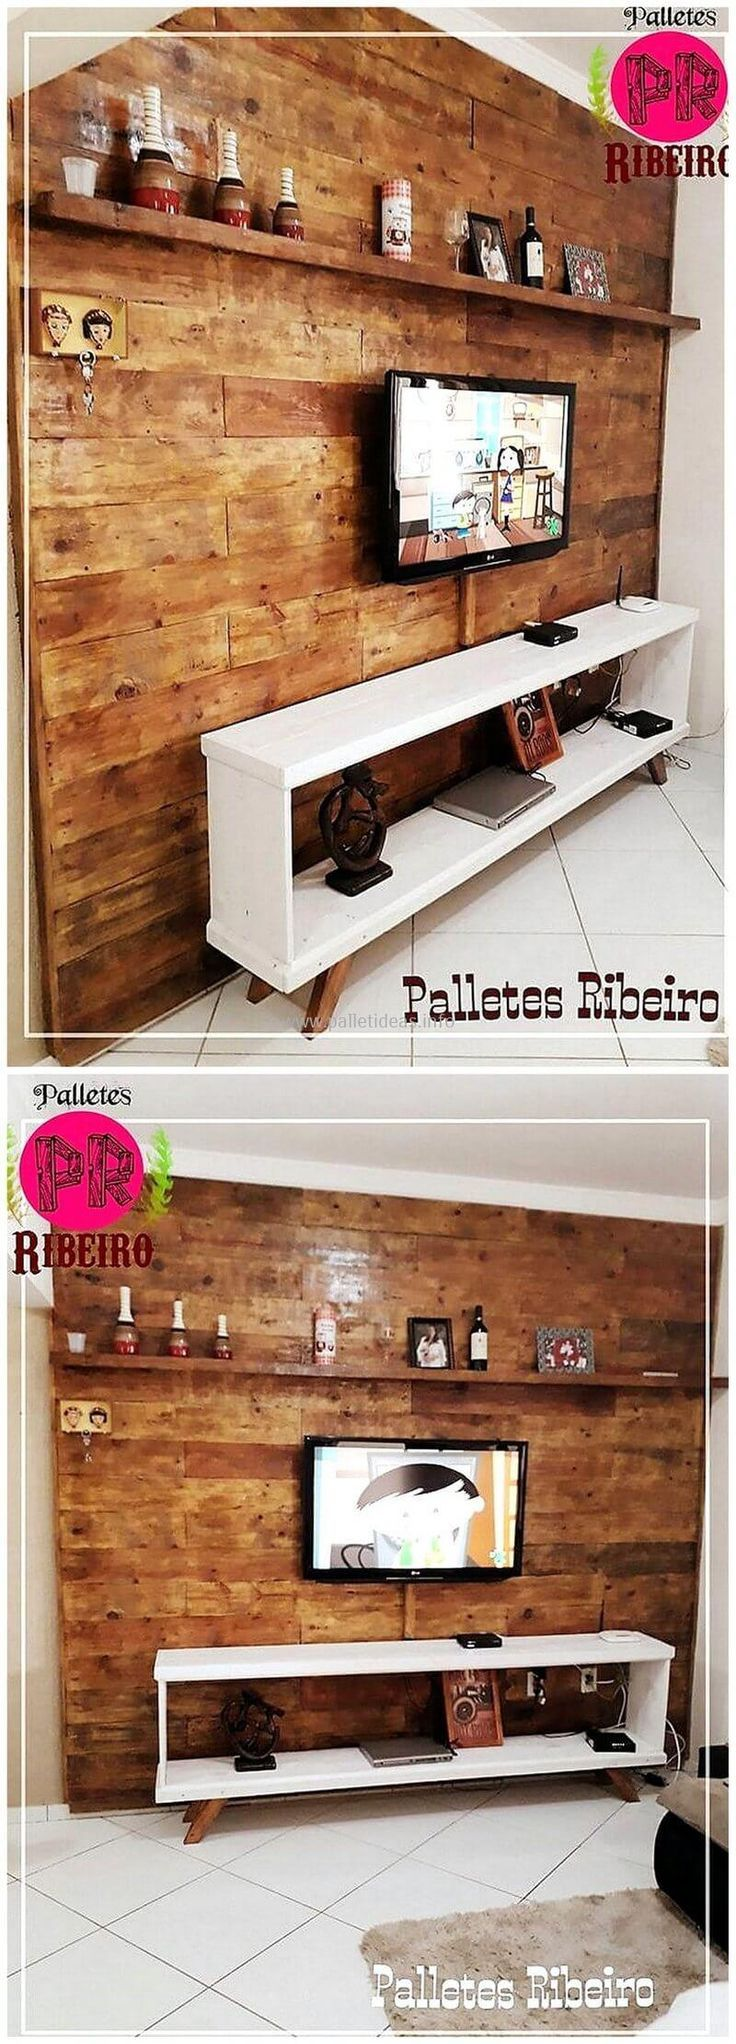 Give a look at this pallets wooden